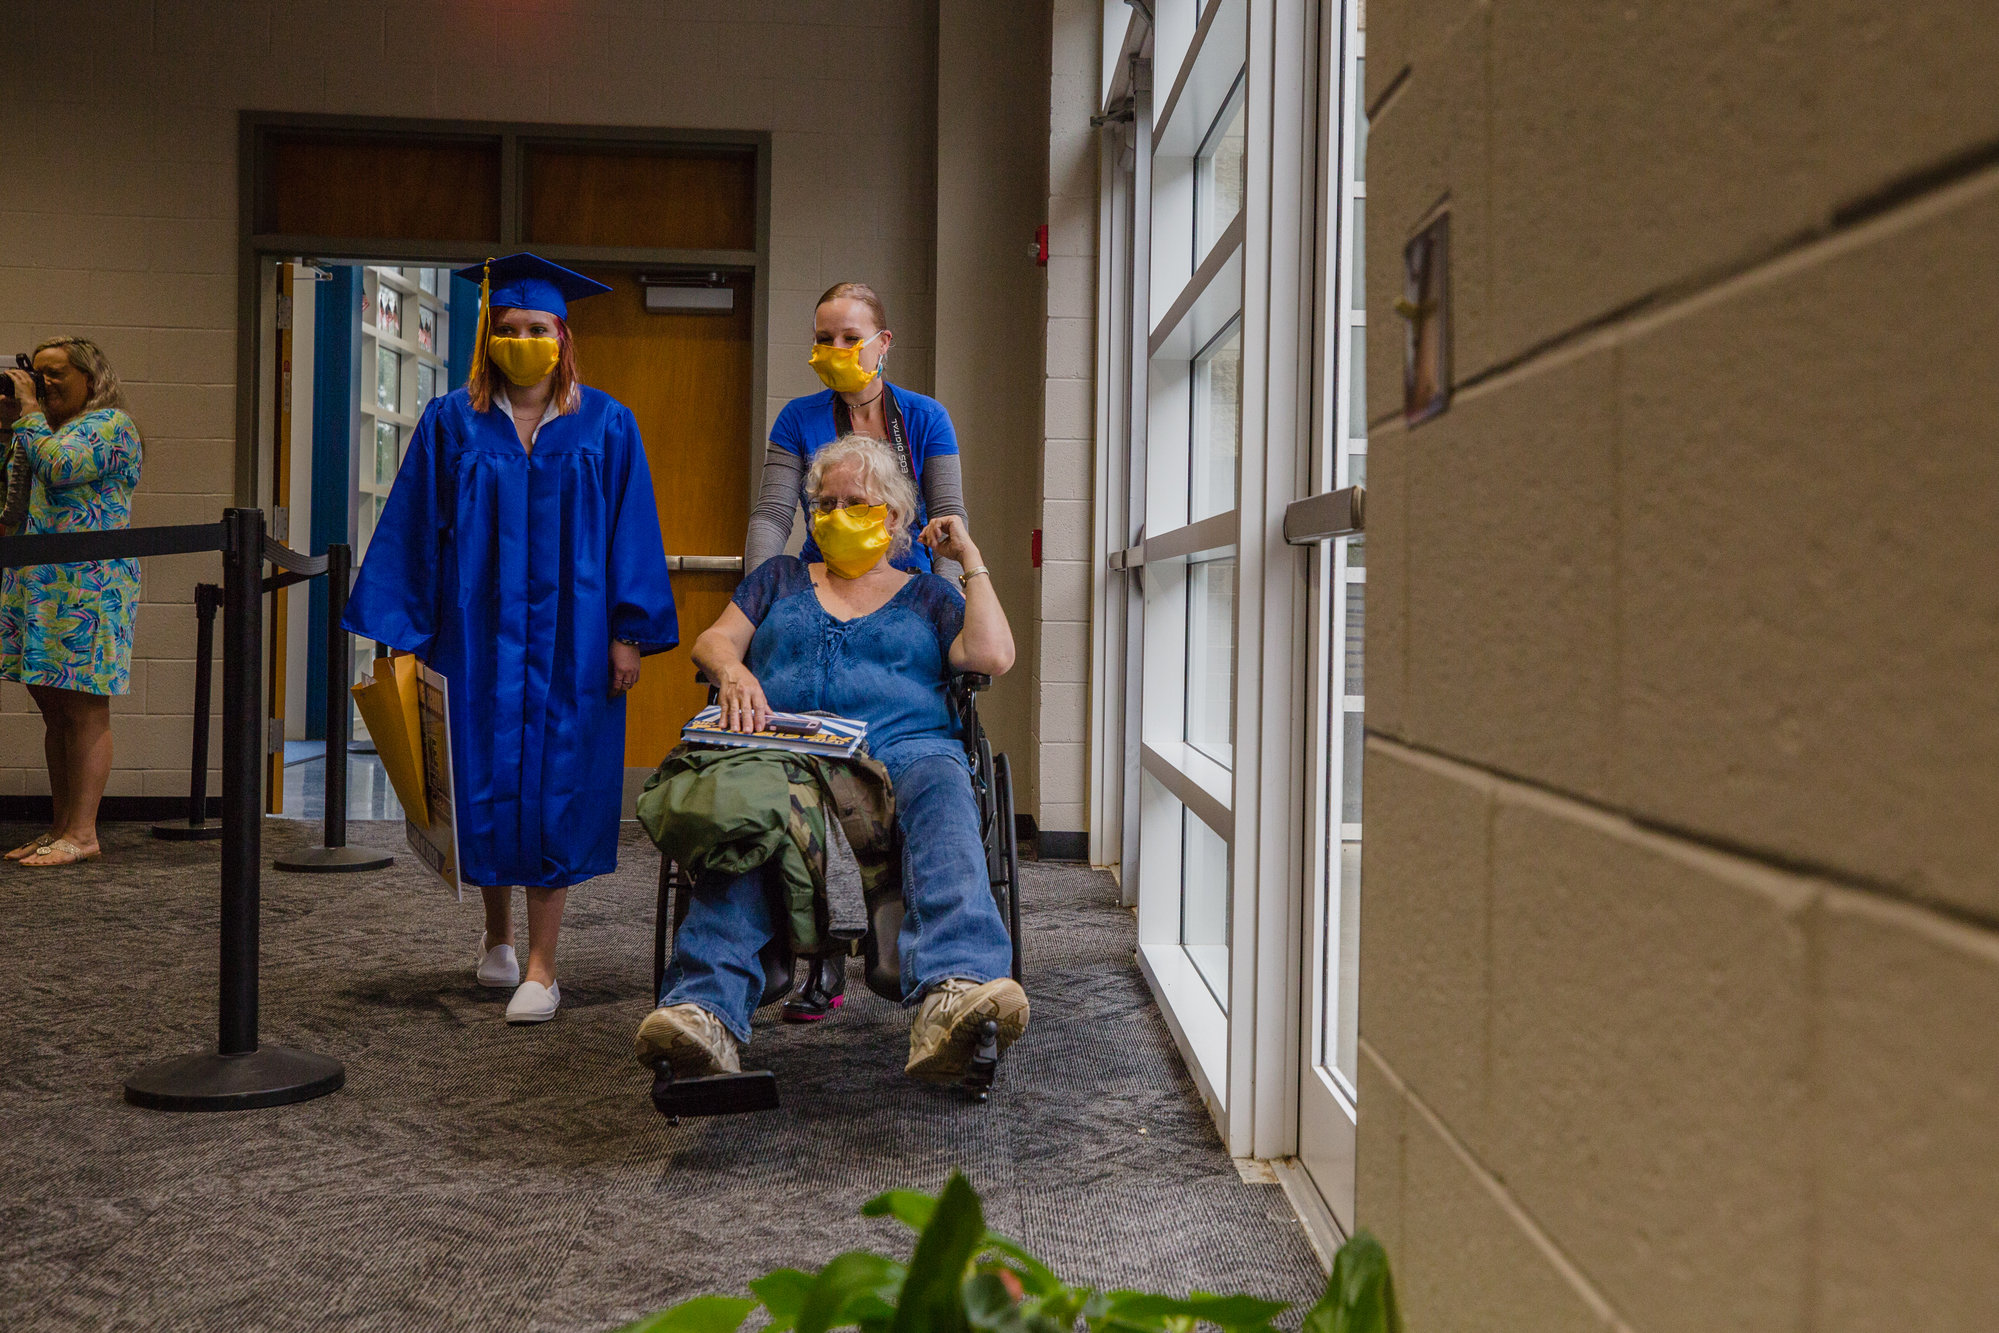 Cheyene McIntosh gets ready to walk at her socially distanced graduation at Sumter High School on May 27, accompanied by Stacey and Dianna McIntosh, her mother and grandmother.